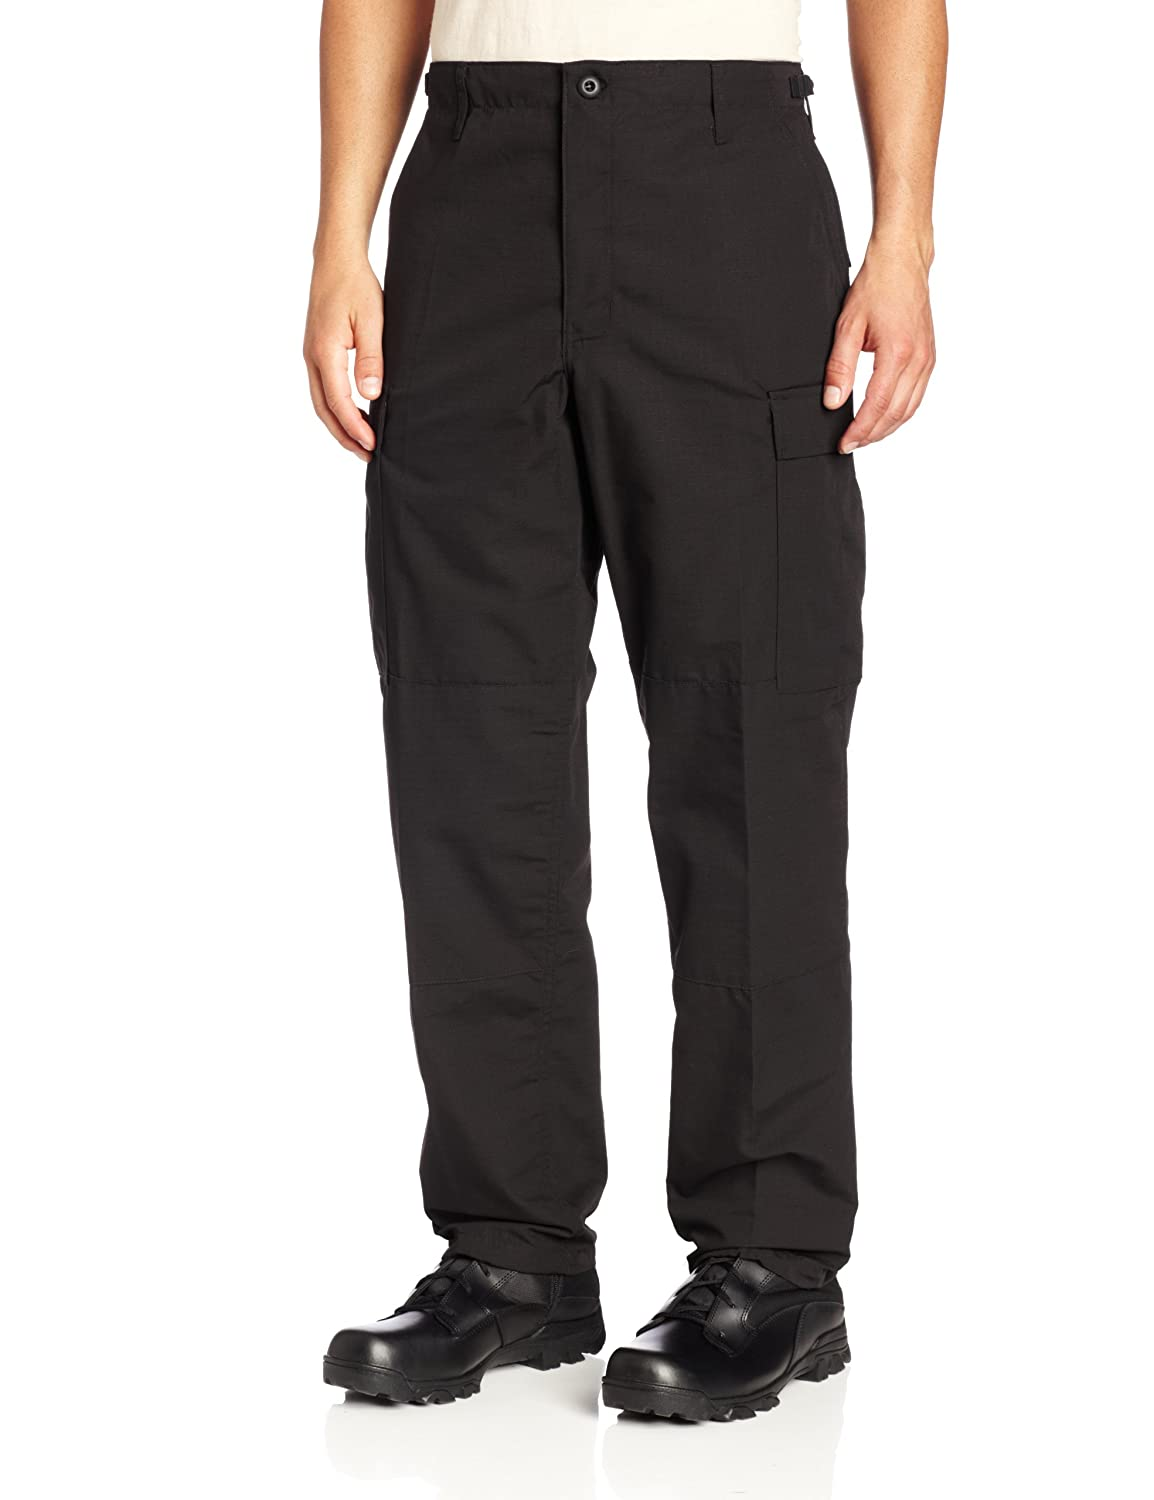 Propper Men's Zip Fly BDU Trouser Pant Propper International